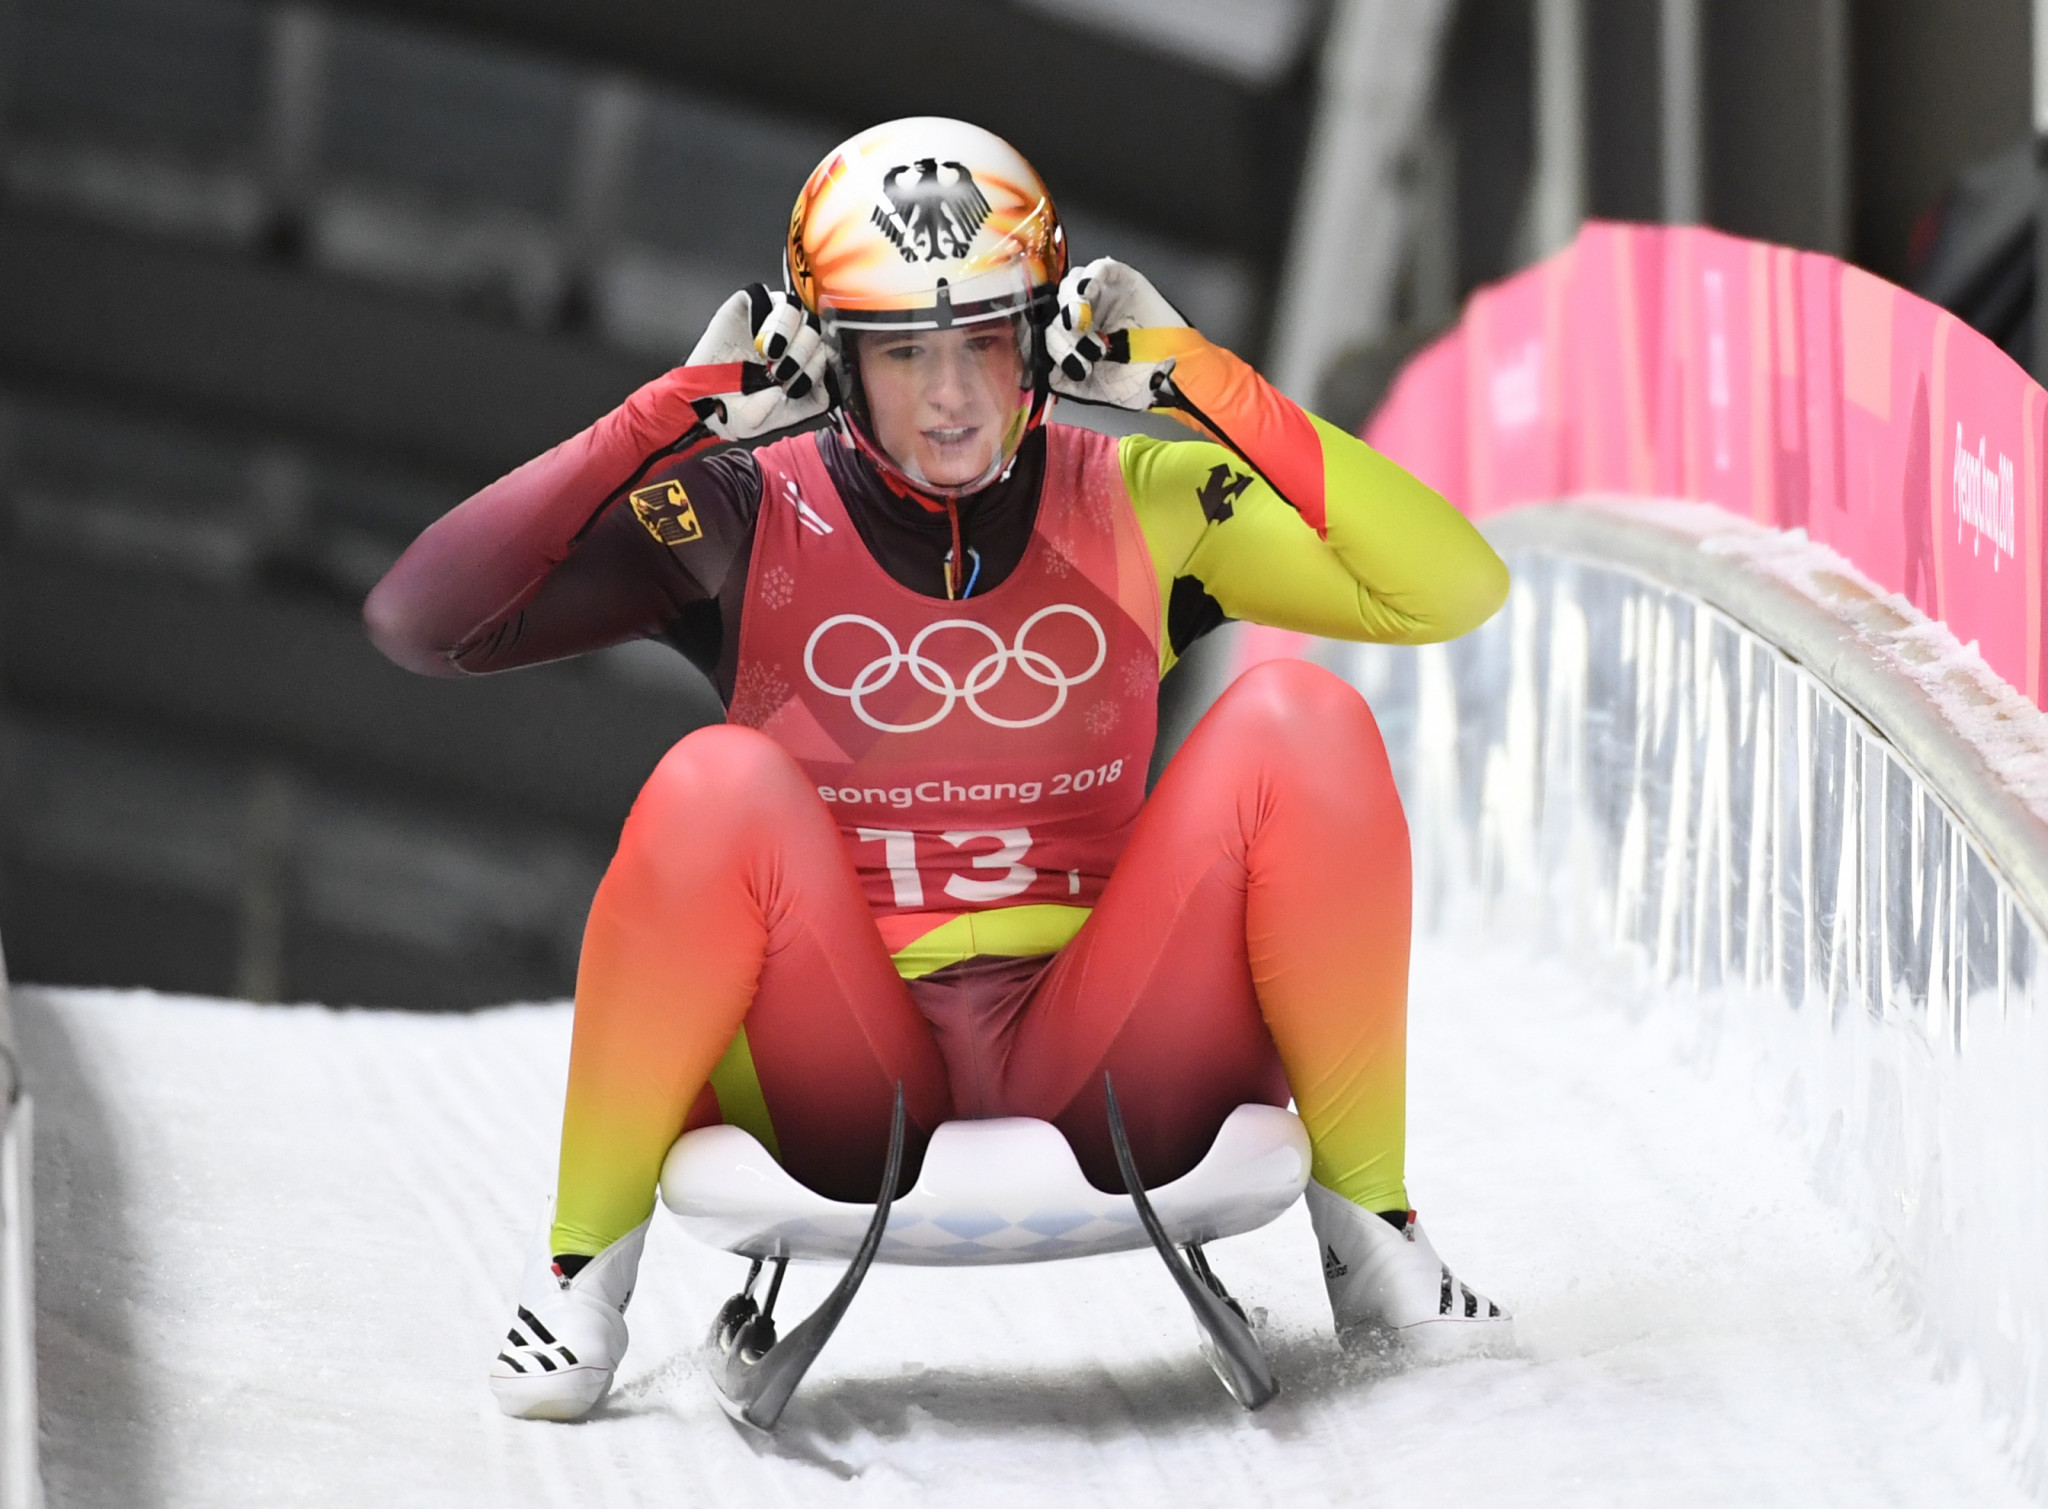 Four-time Olympic champion Natalie Geisenberger of Germany maintained her perfect start to the new Luge World Cup season ©Getty Images